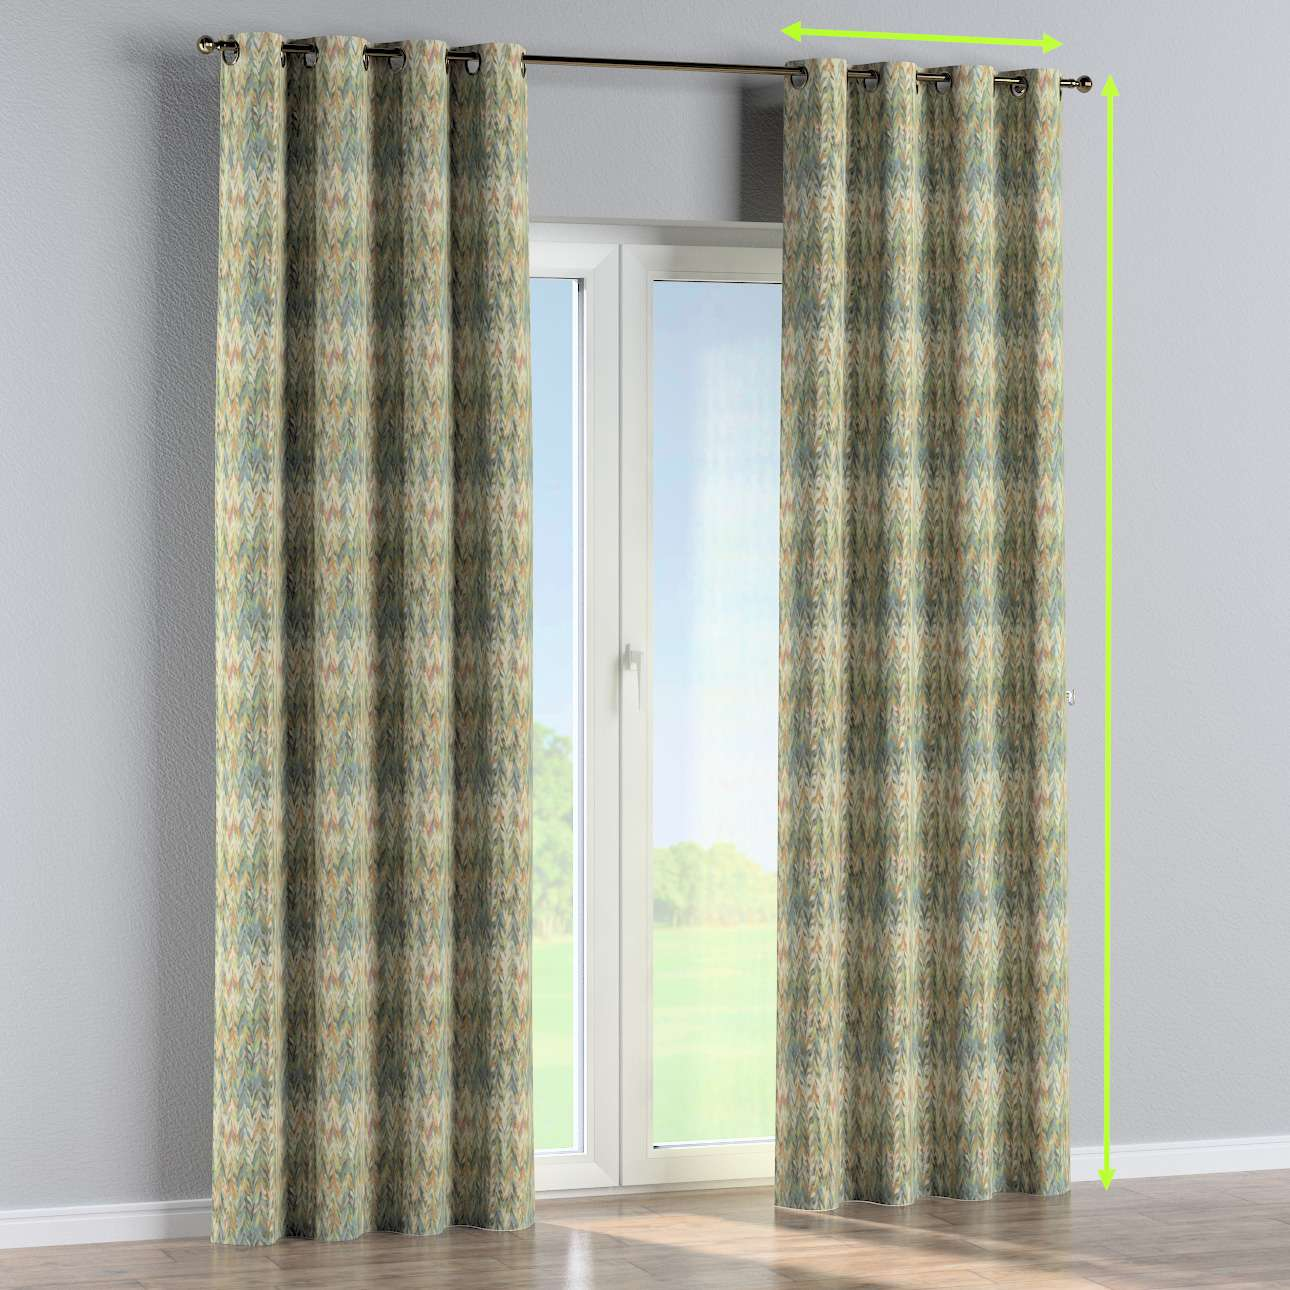 Eyelet curtain in collection SALE, fabric: 142-67